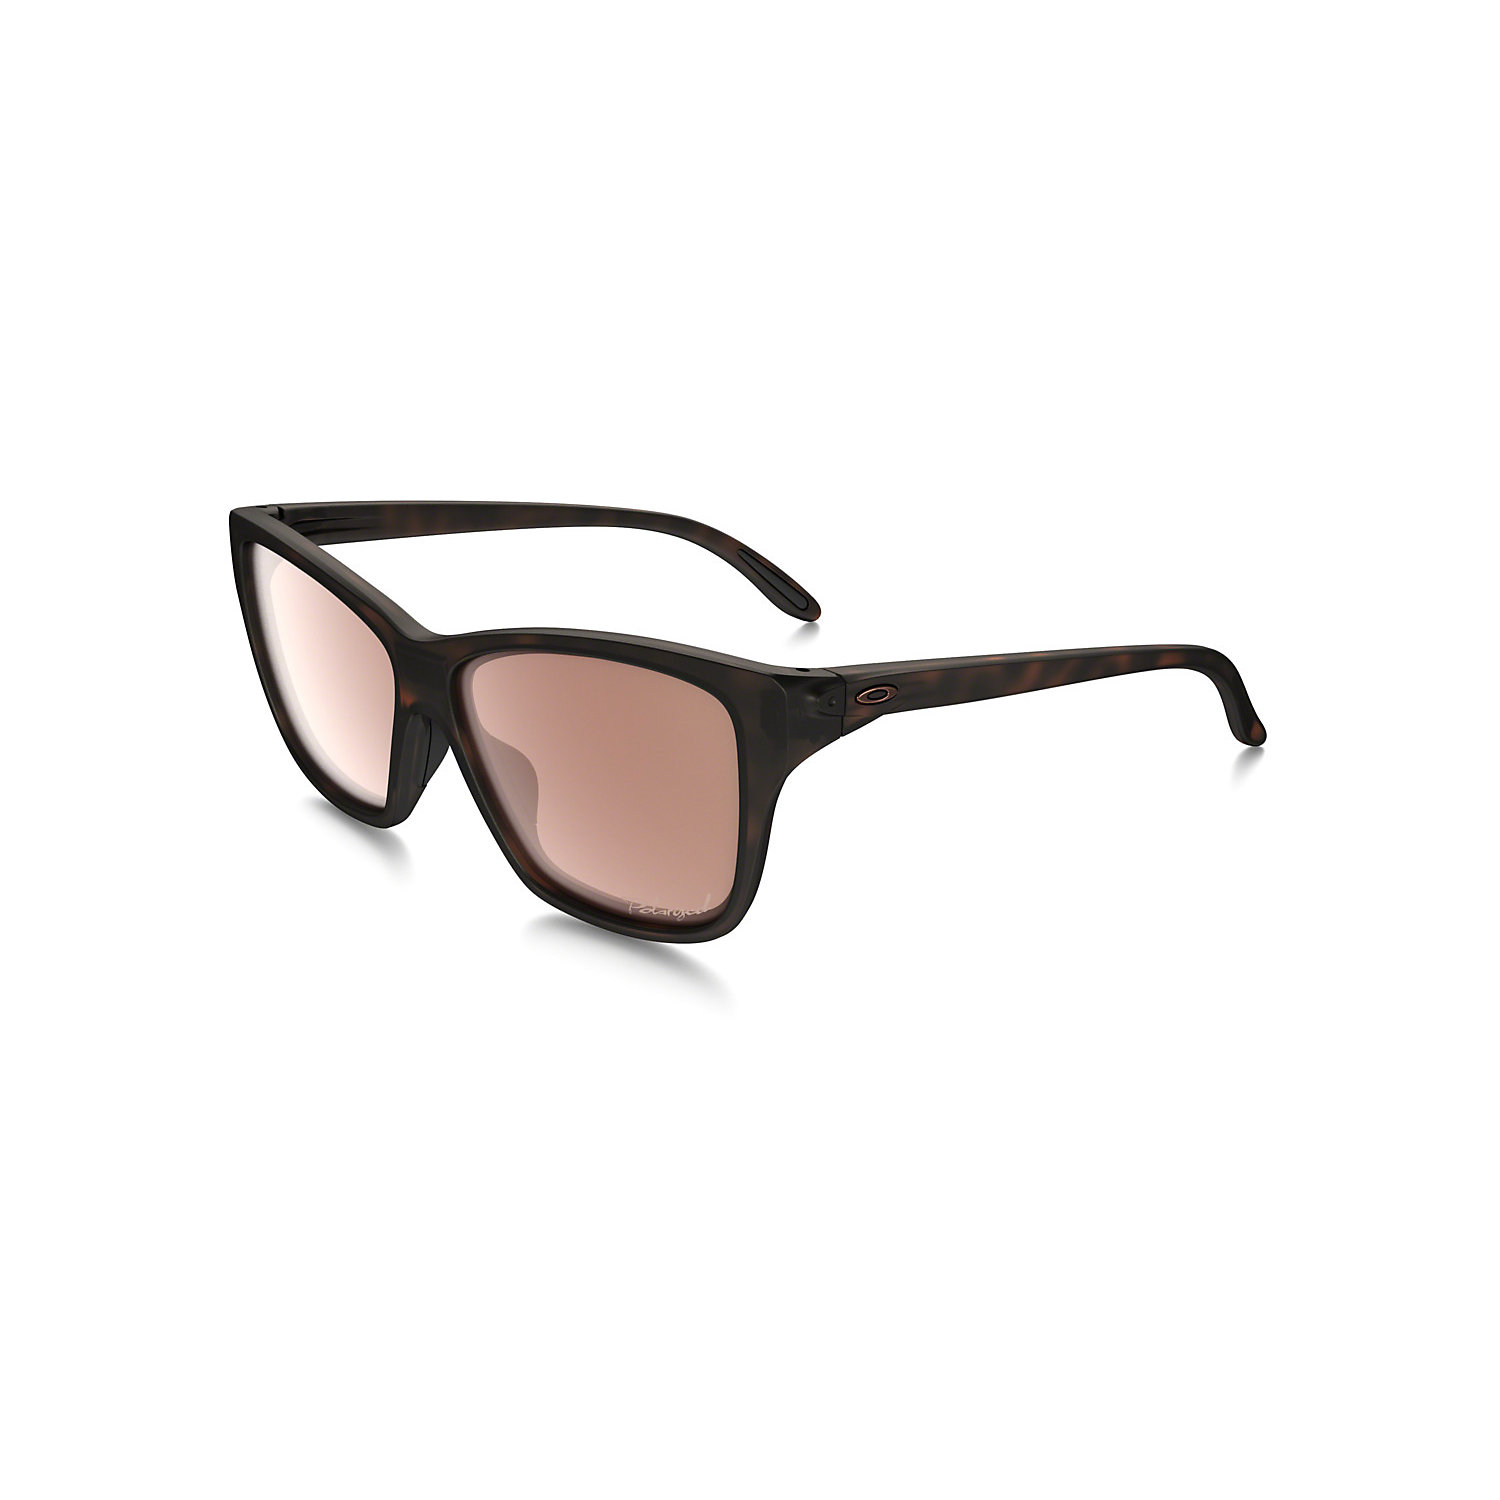 3ee915a850 Oakley Hold On Polarized Sunglasses. Double tap to zoom